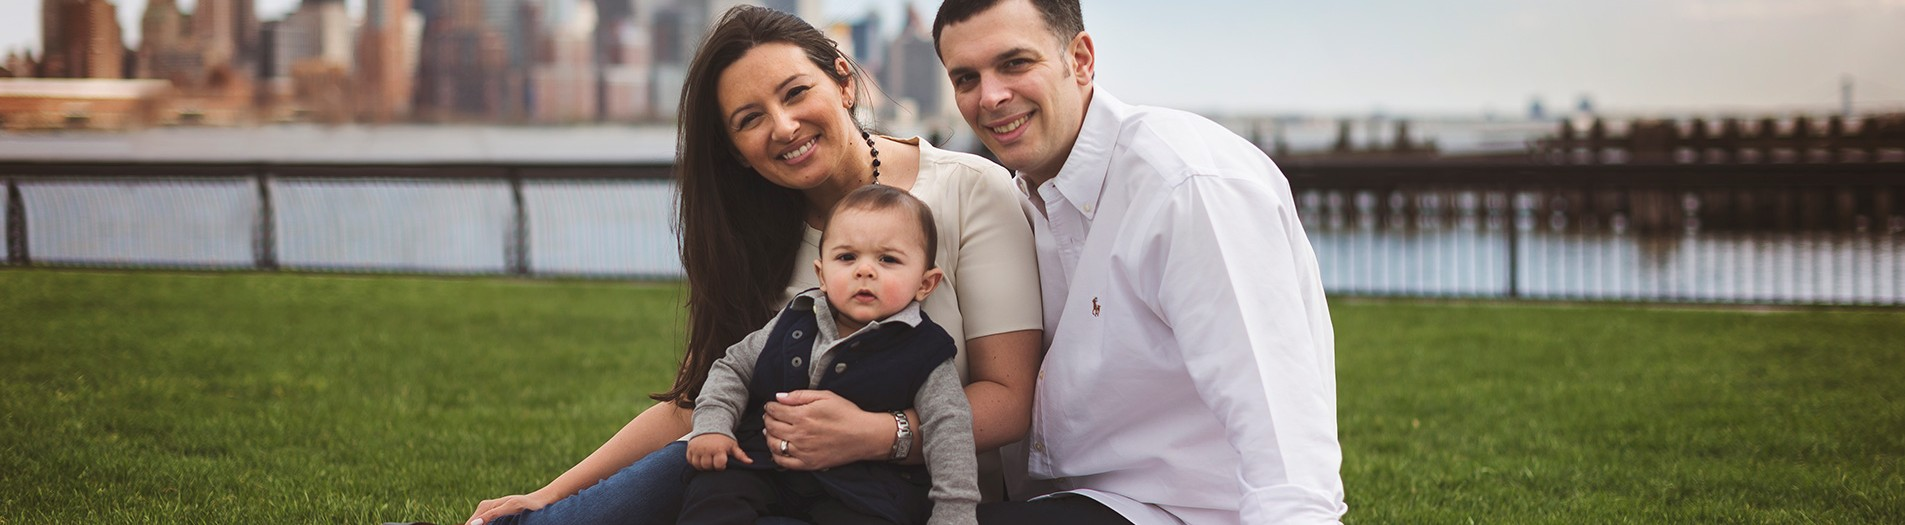 The Caranci Family {Hoboken, Jersey City, Family Photographer}